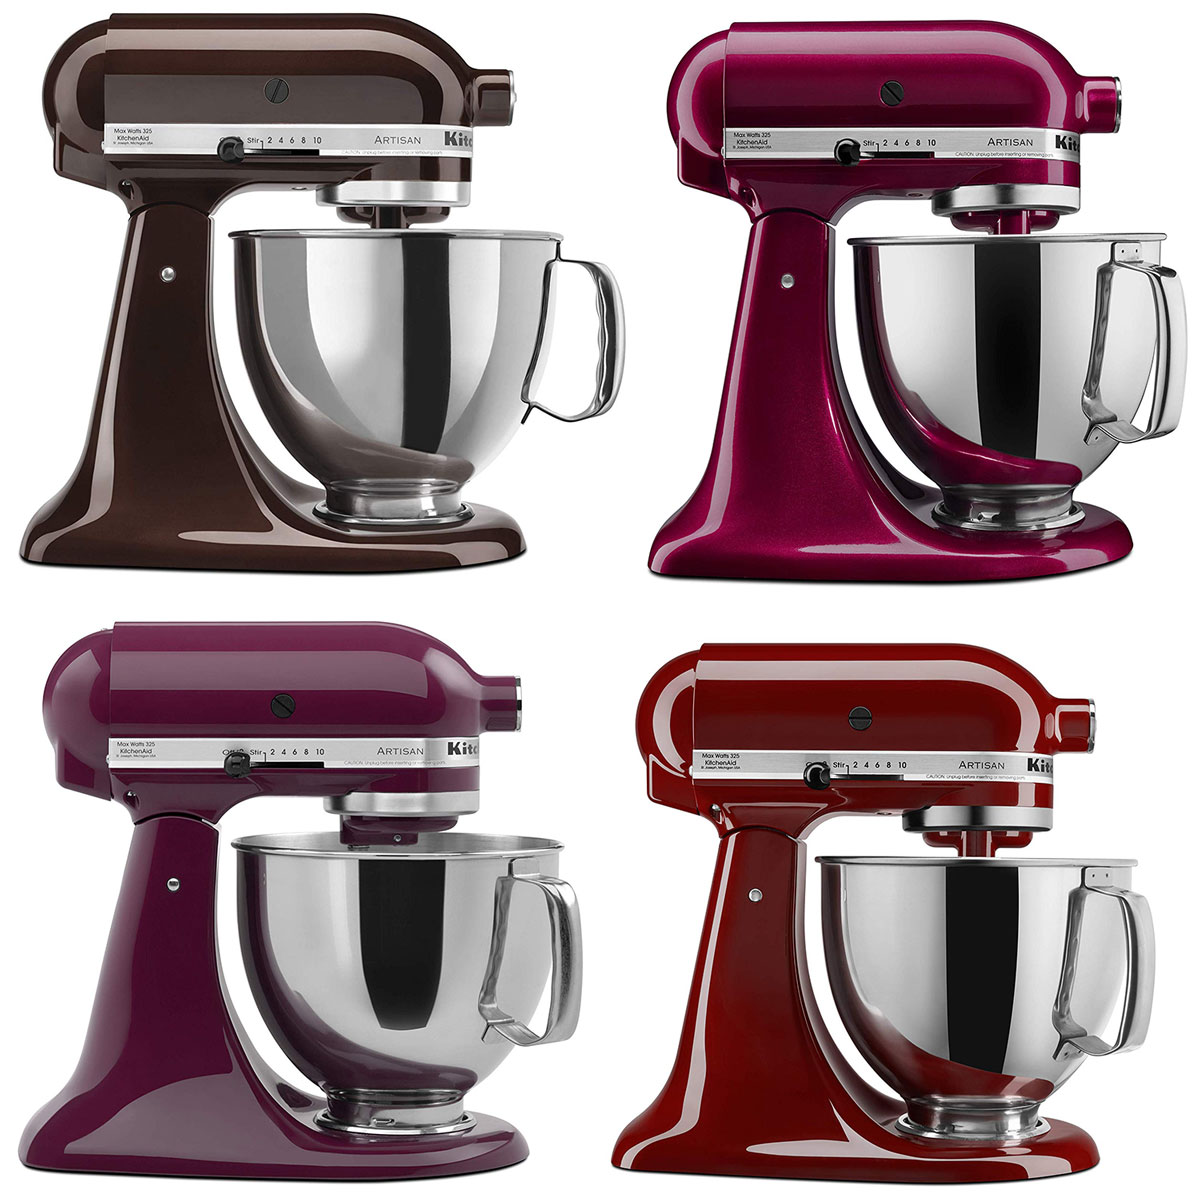 kitchenaid mixers in red and brown